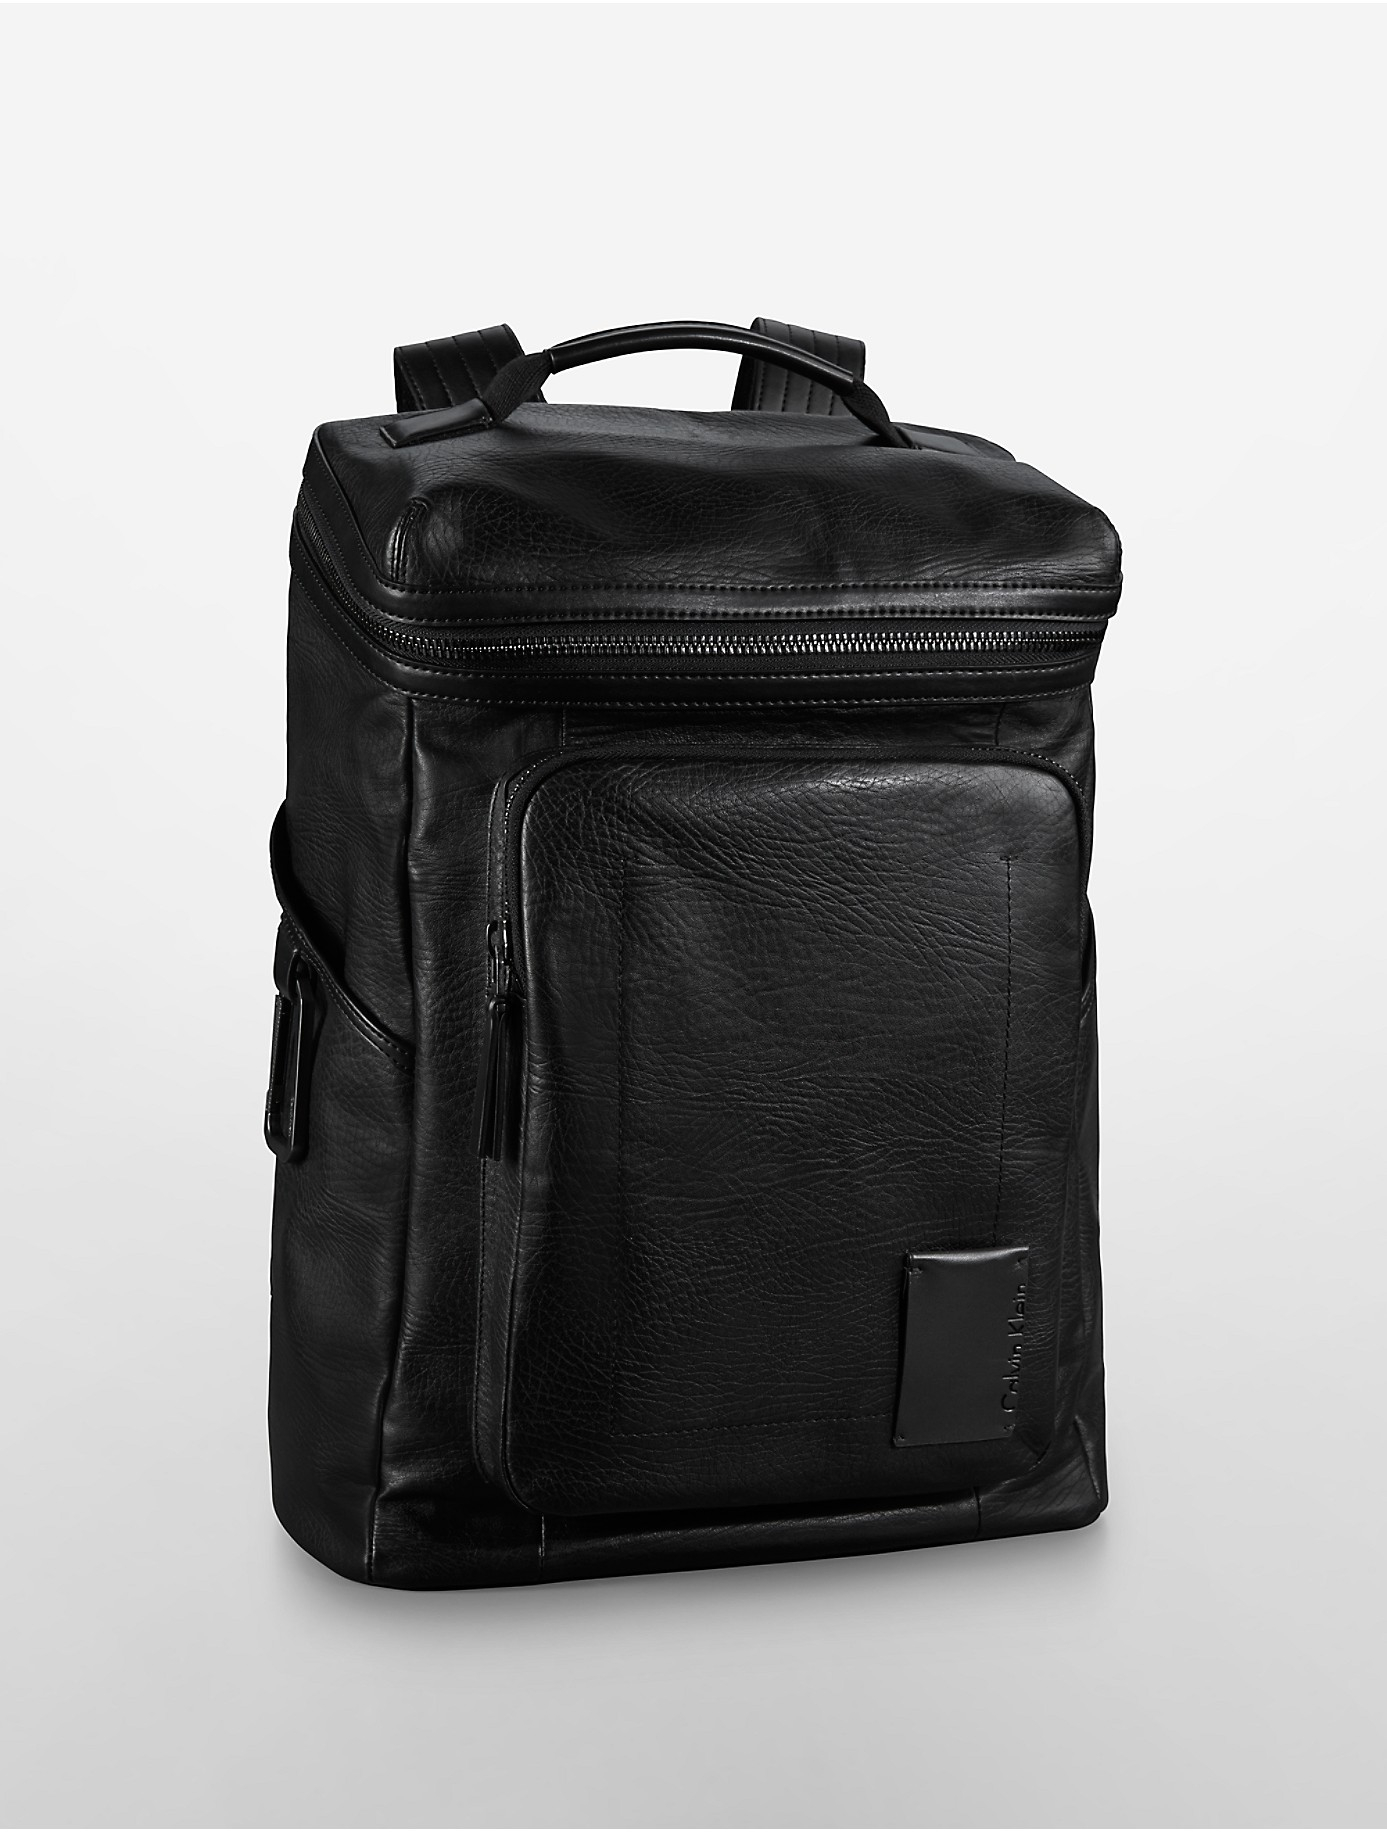 Calvin Klein Jeans William Textured Leather Backpack In